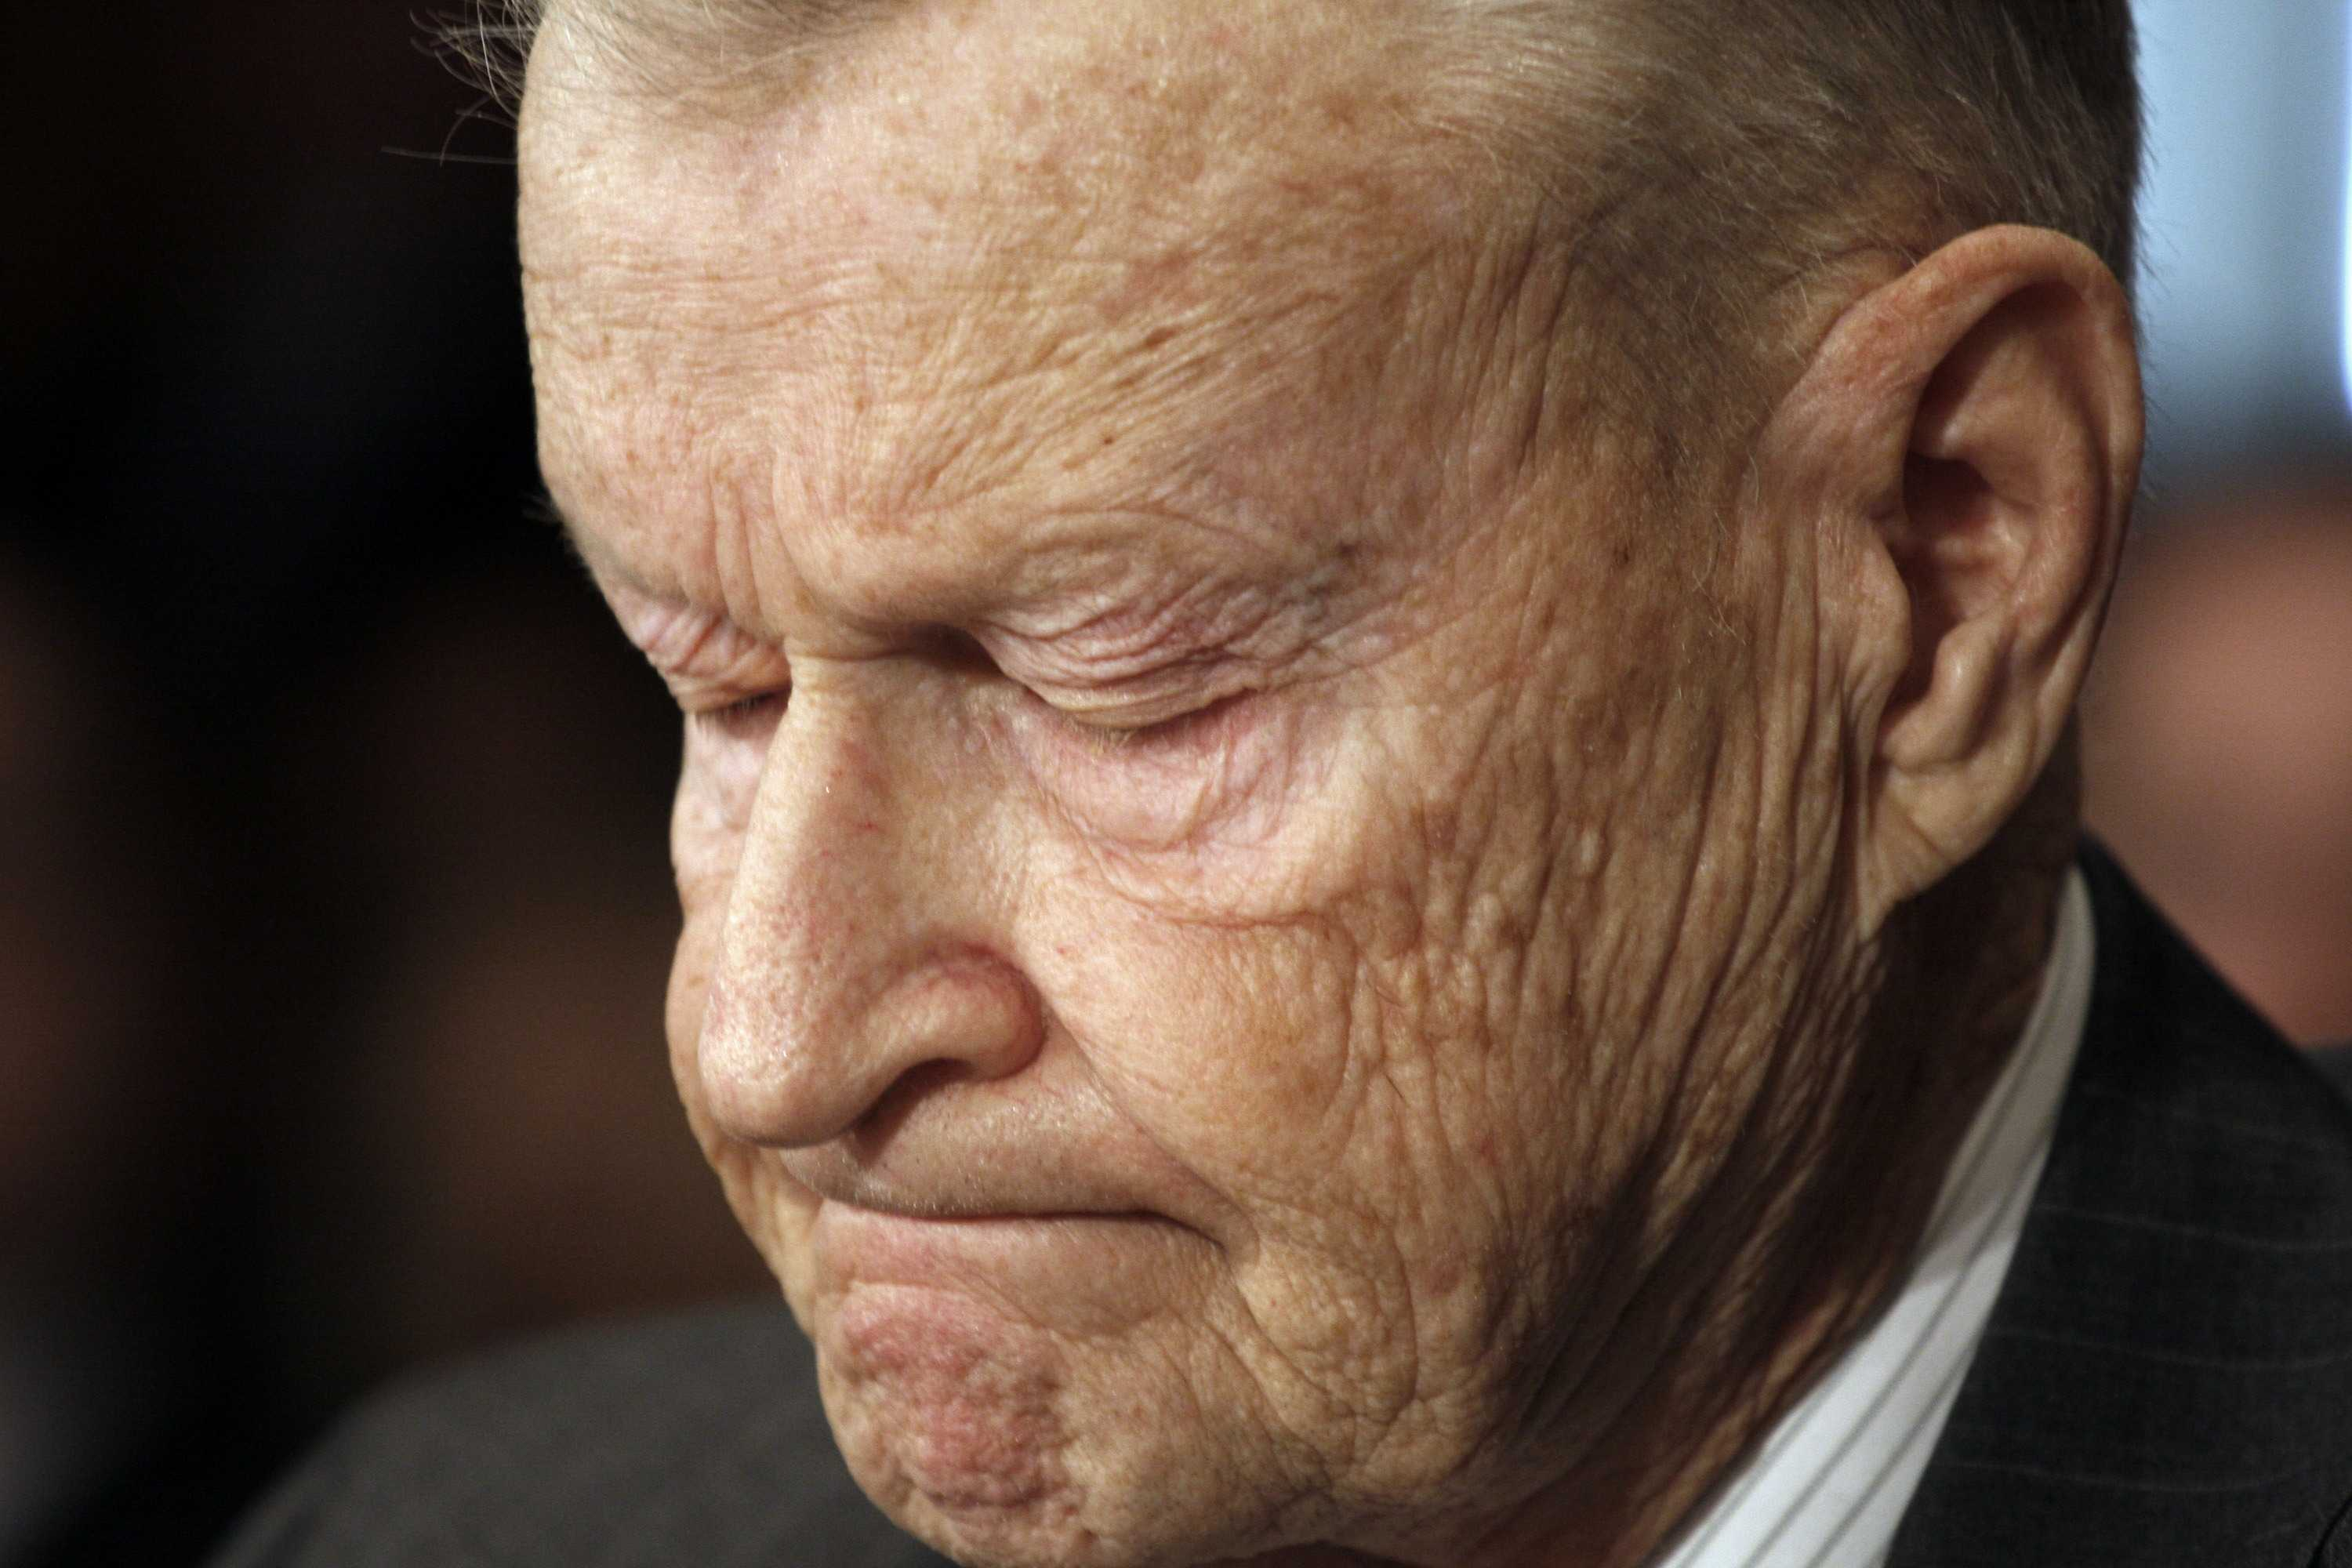 National Security Adviser To President Carter, Zbigniew Brzezinski Dies